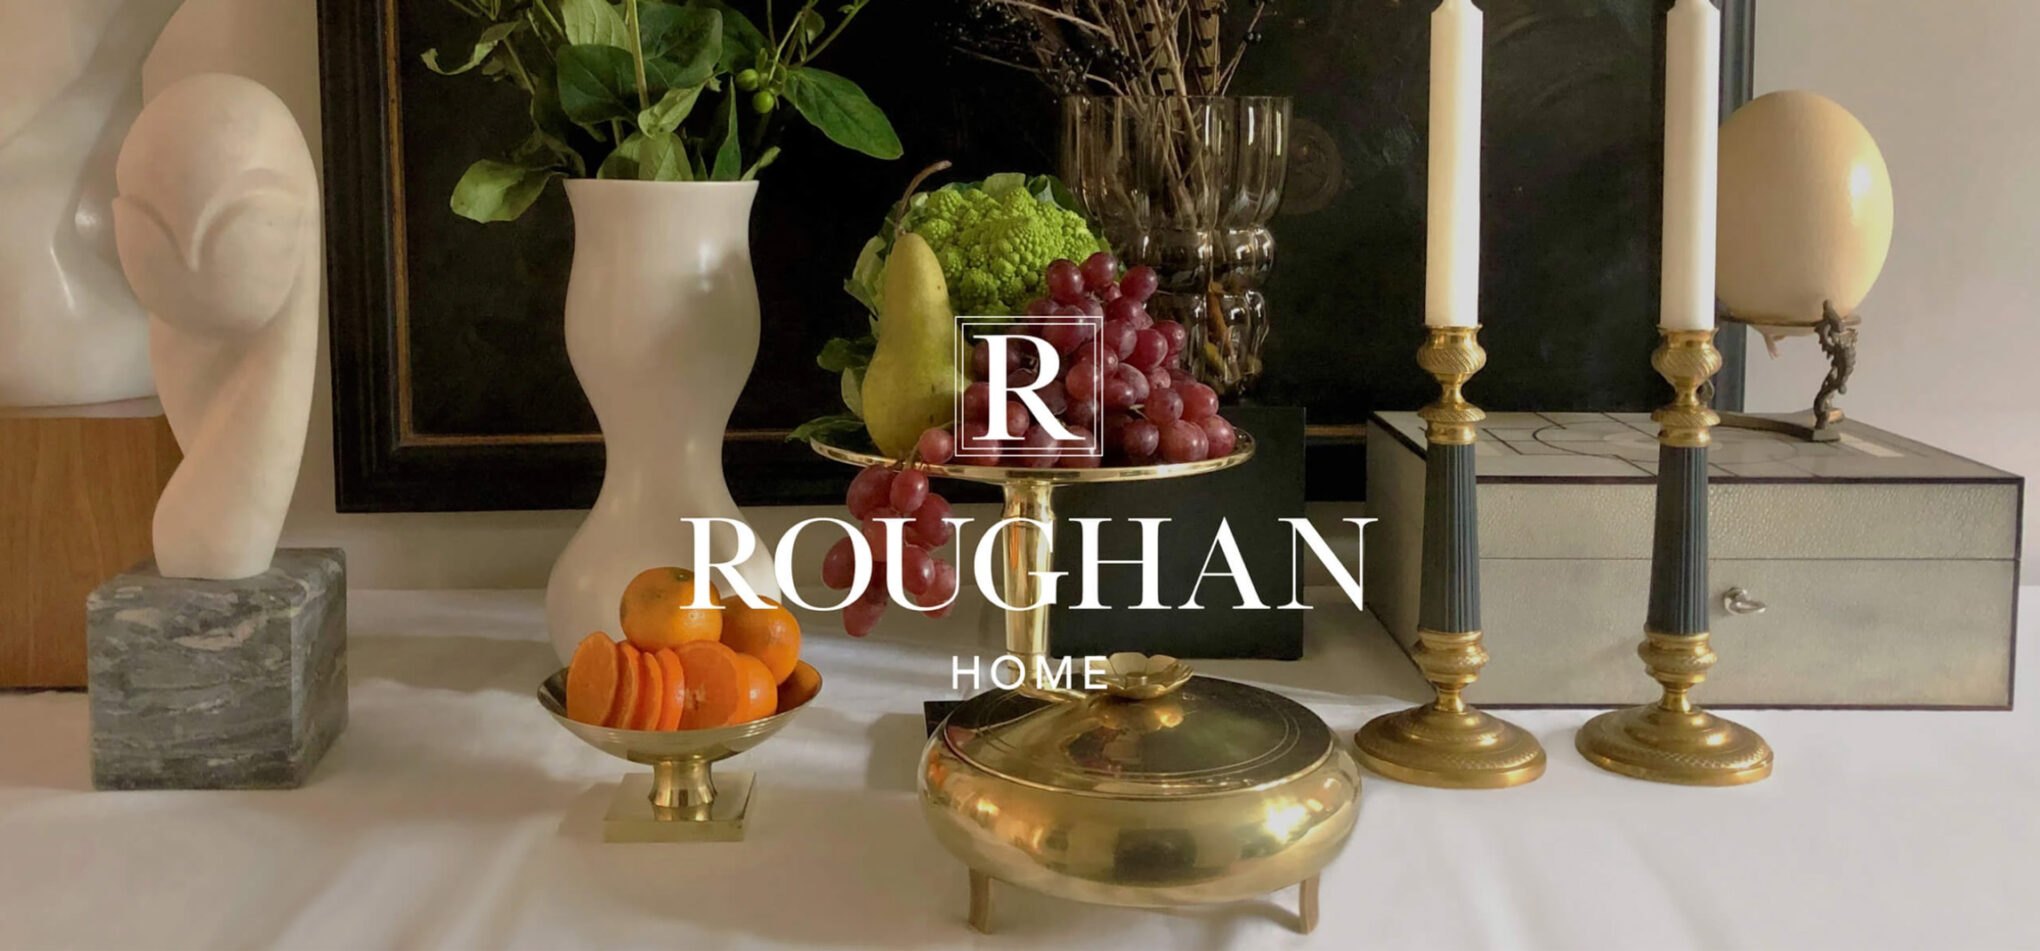 Roughan Home Image